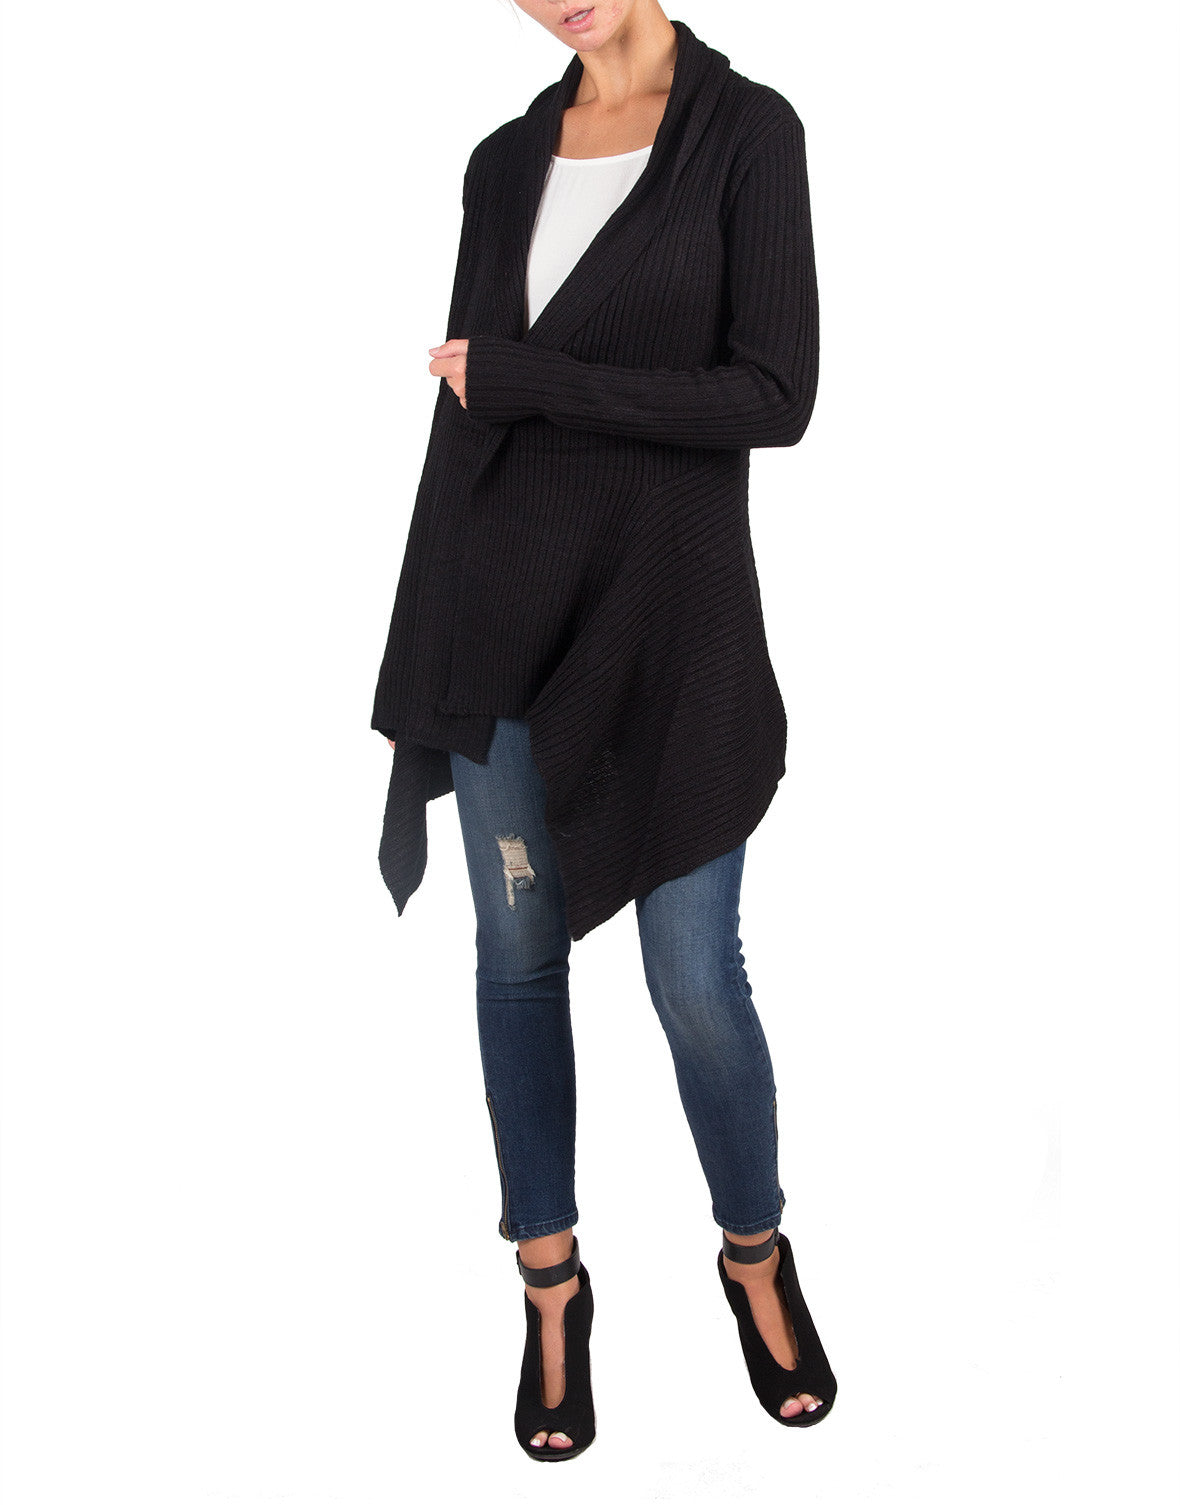 Long Cozy Knitted Cardigan - Black - Ambiance 62561